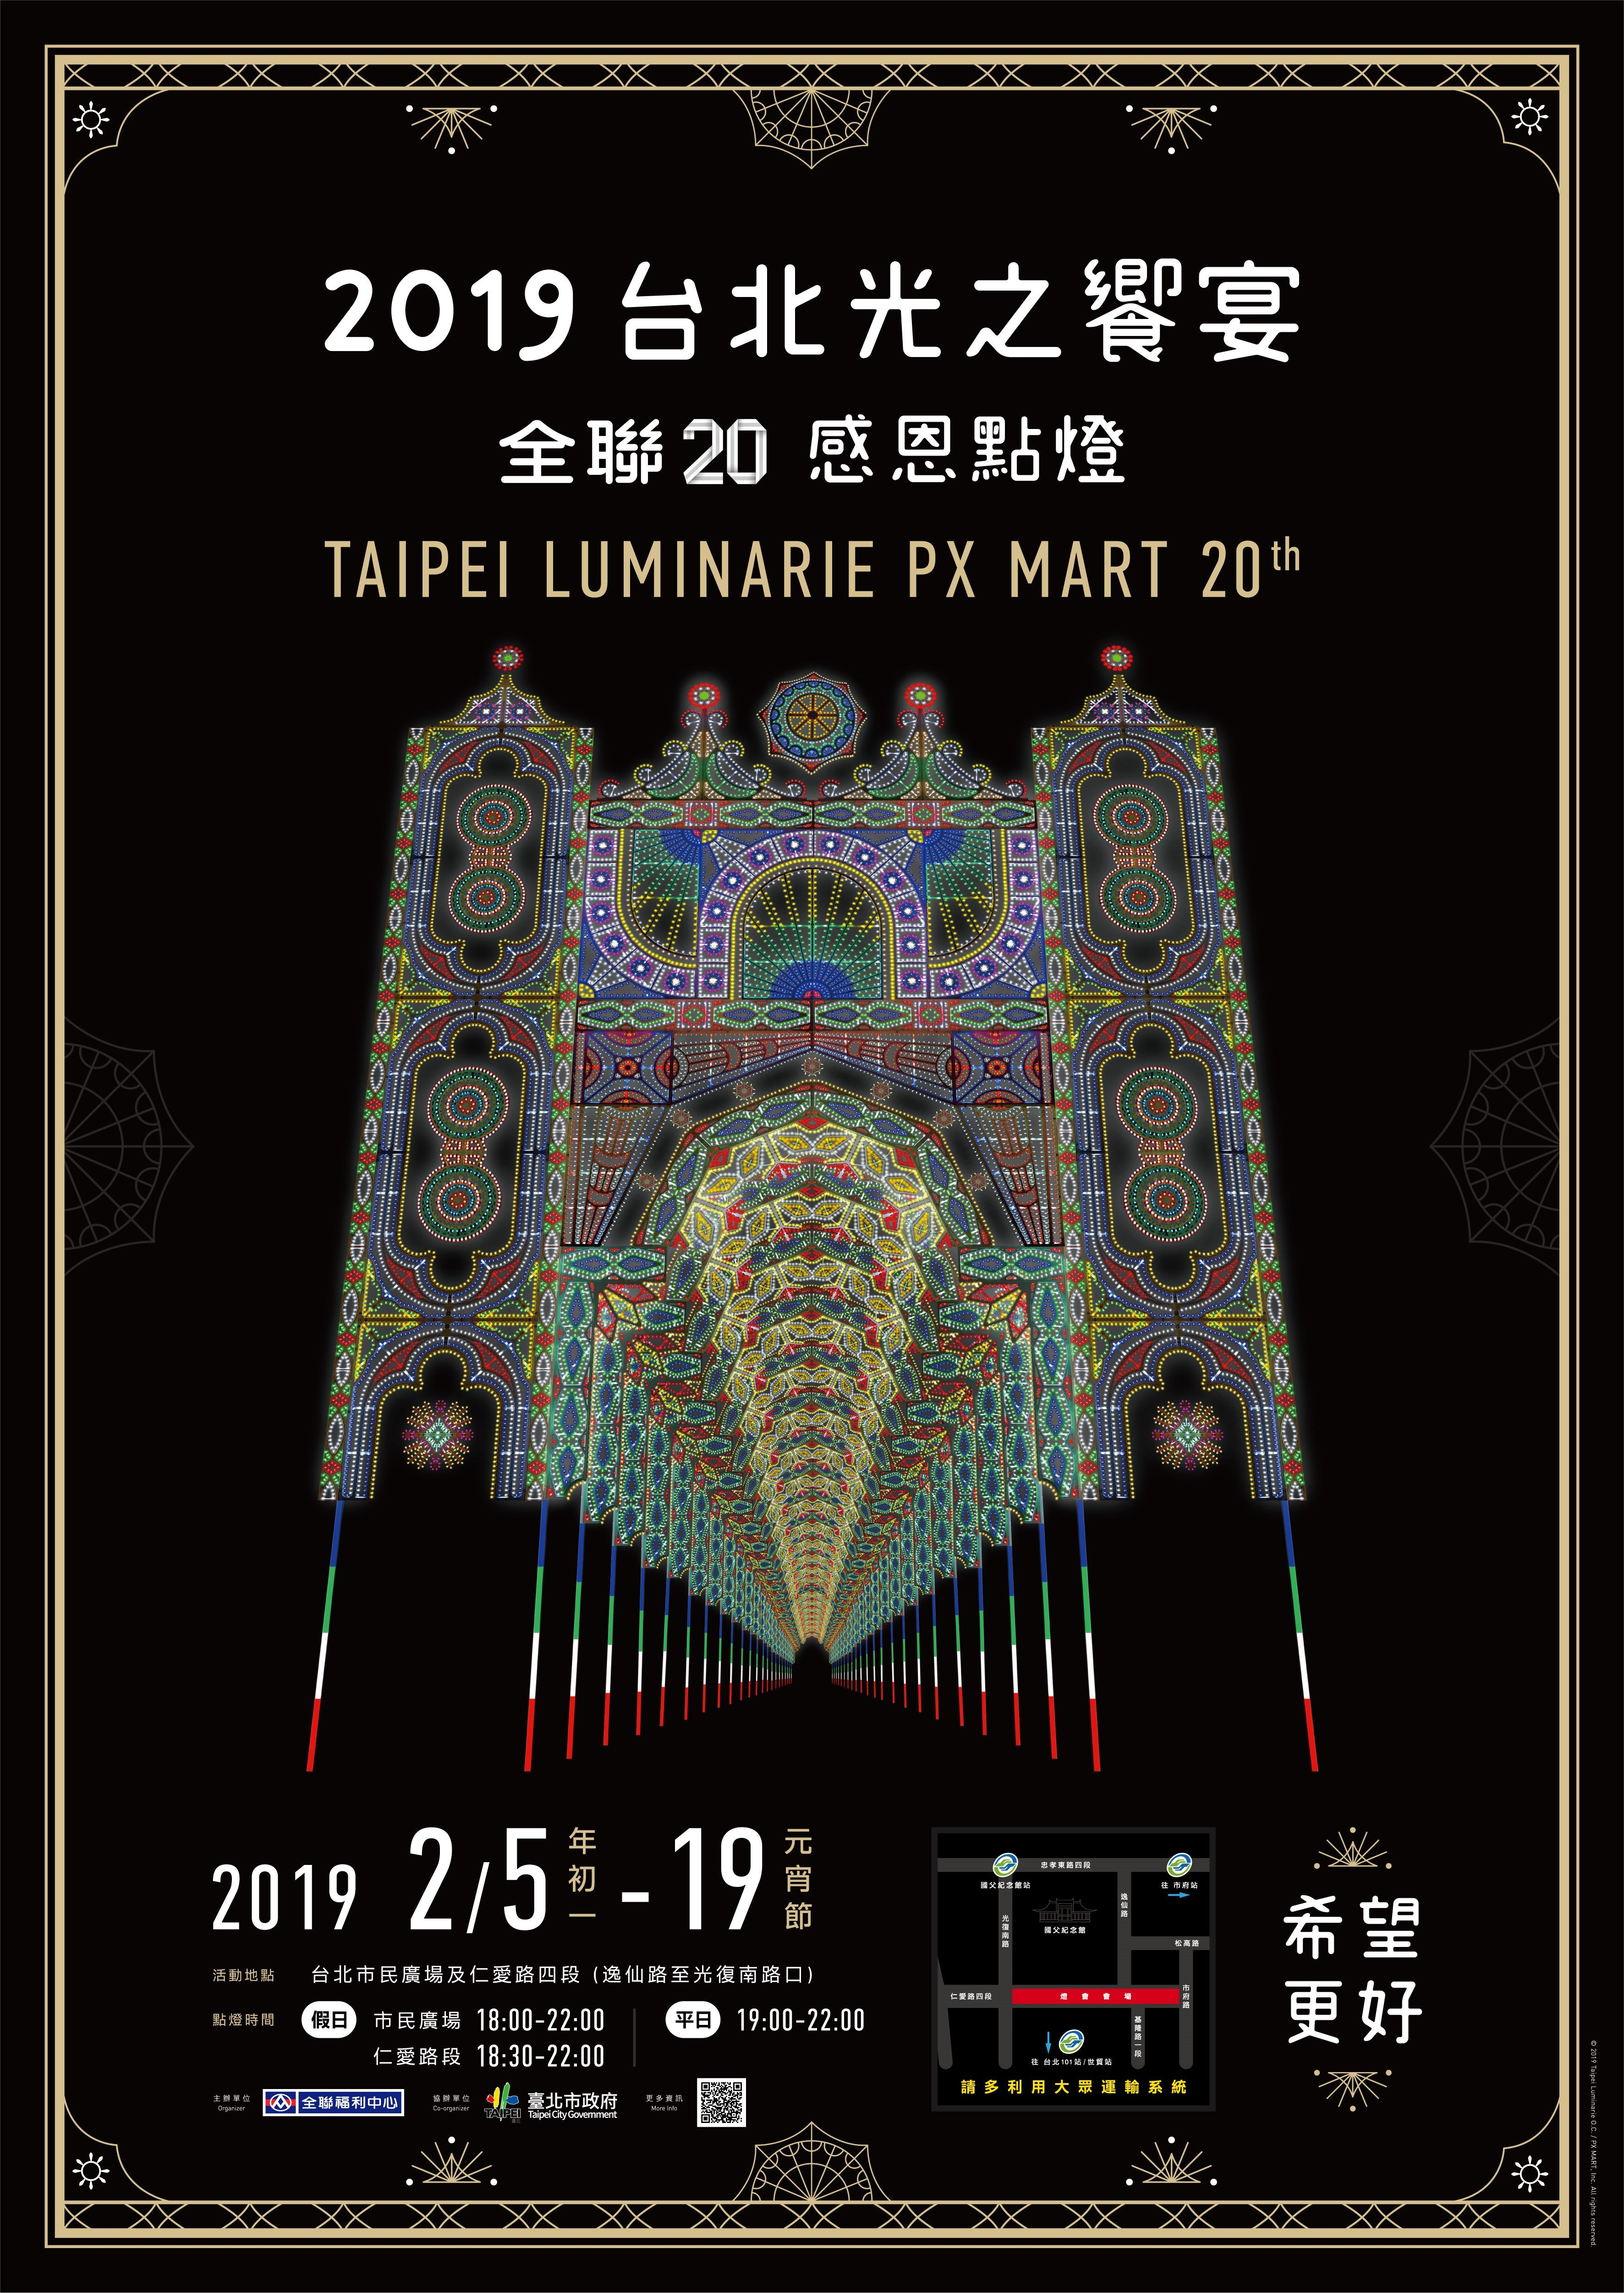 Dazzling Light Spectacle at the 2019 Taipei Luminarie